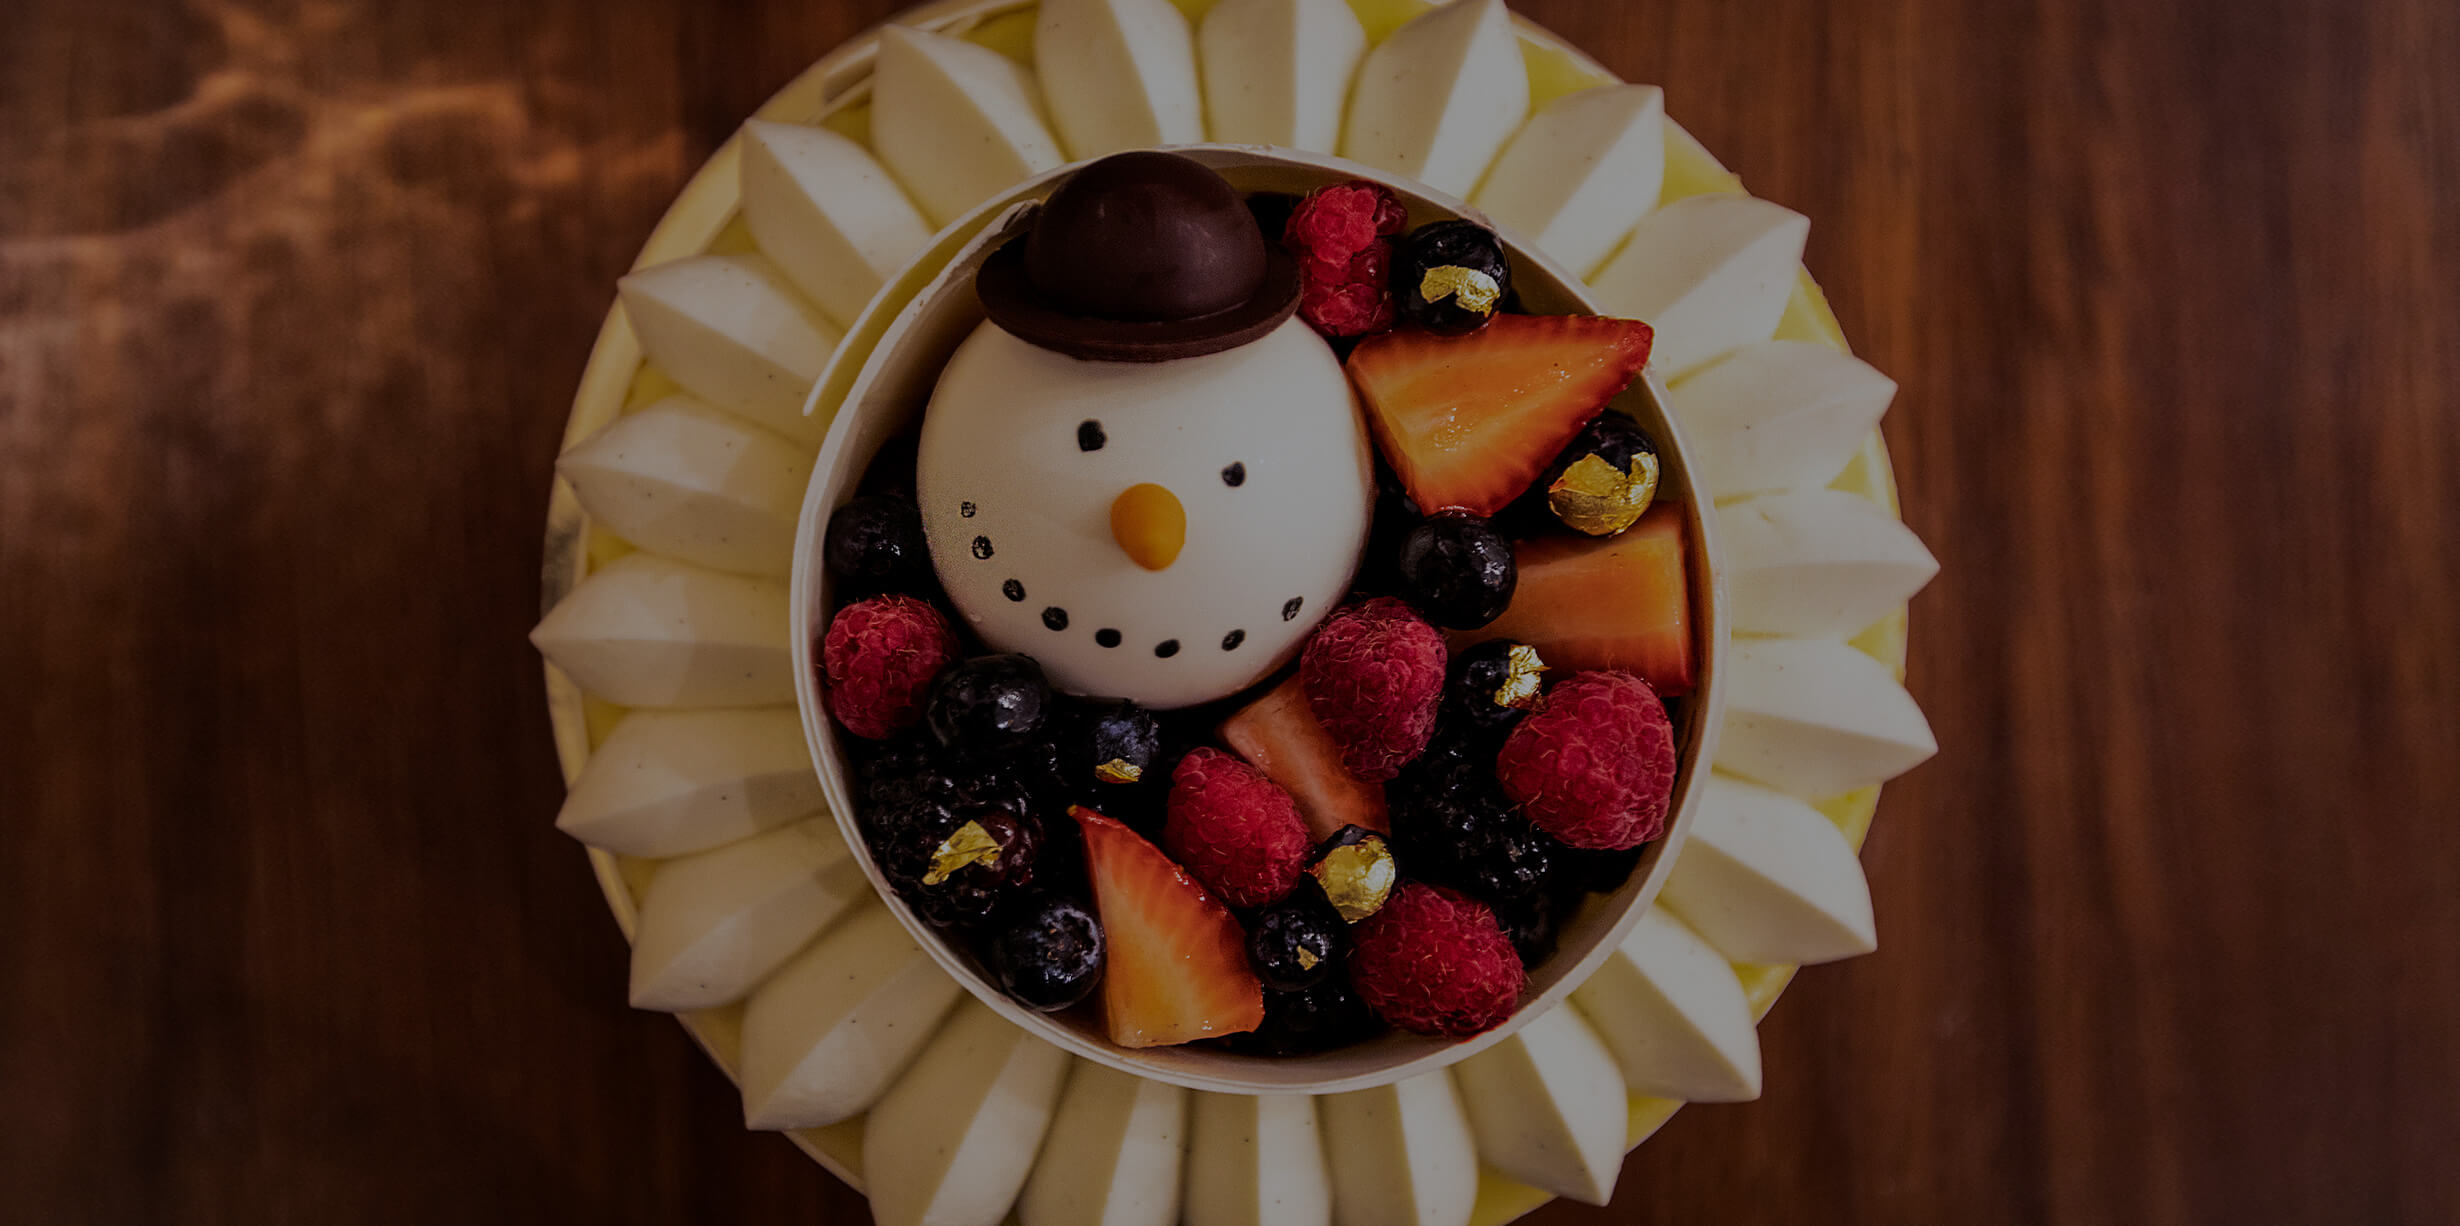 Season's Treatings: A Sneak Peek at Our Holiday Sweets